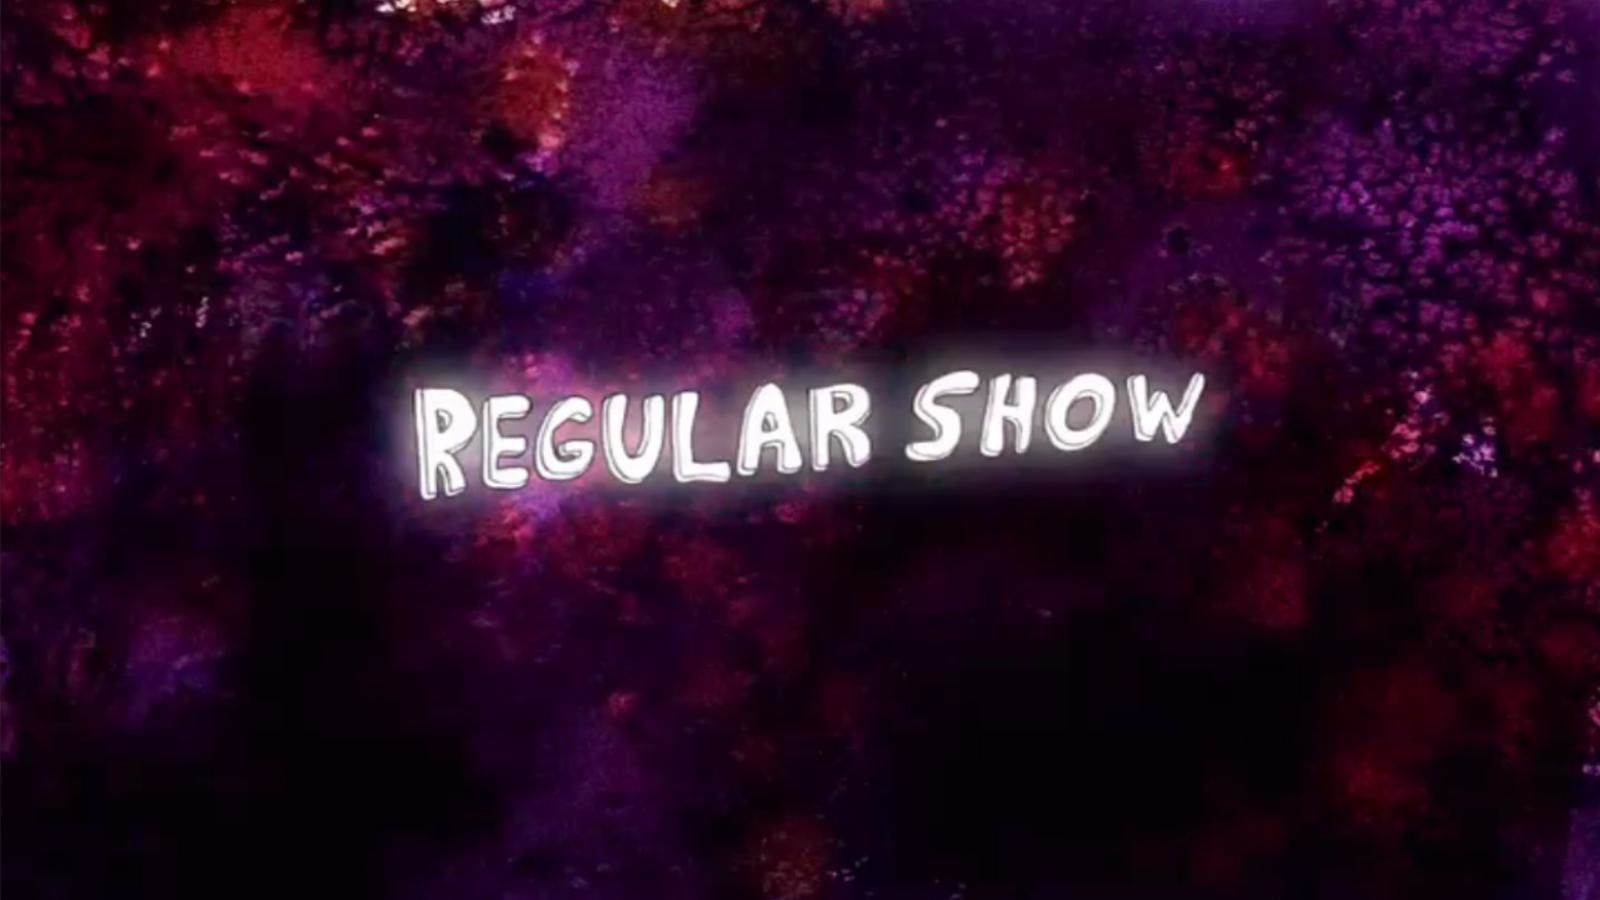 download hd 1600x900 regular show computer background id 438666 for free